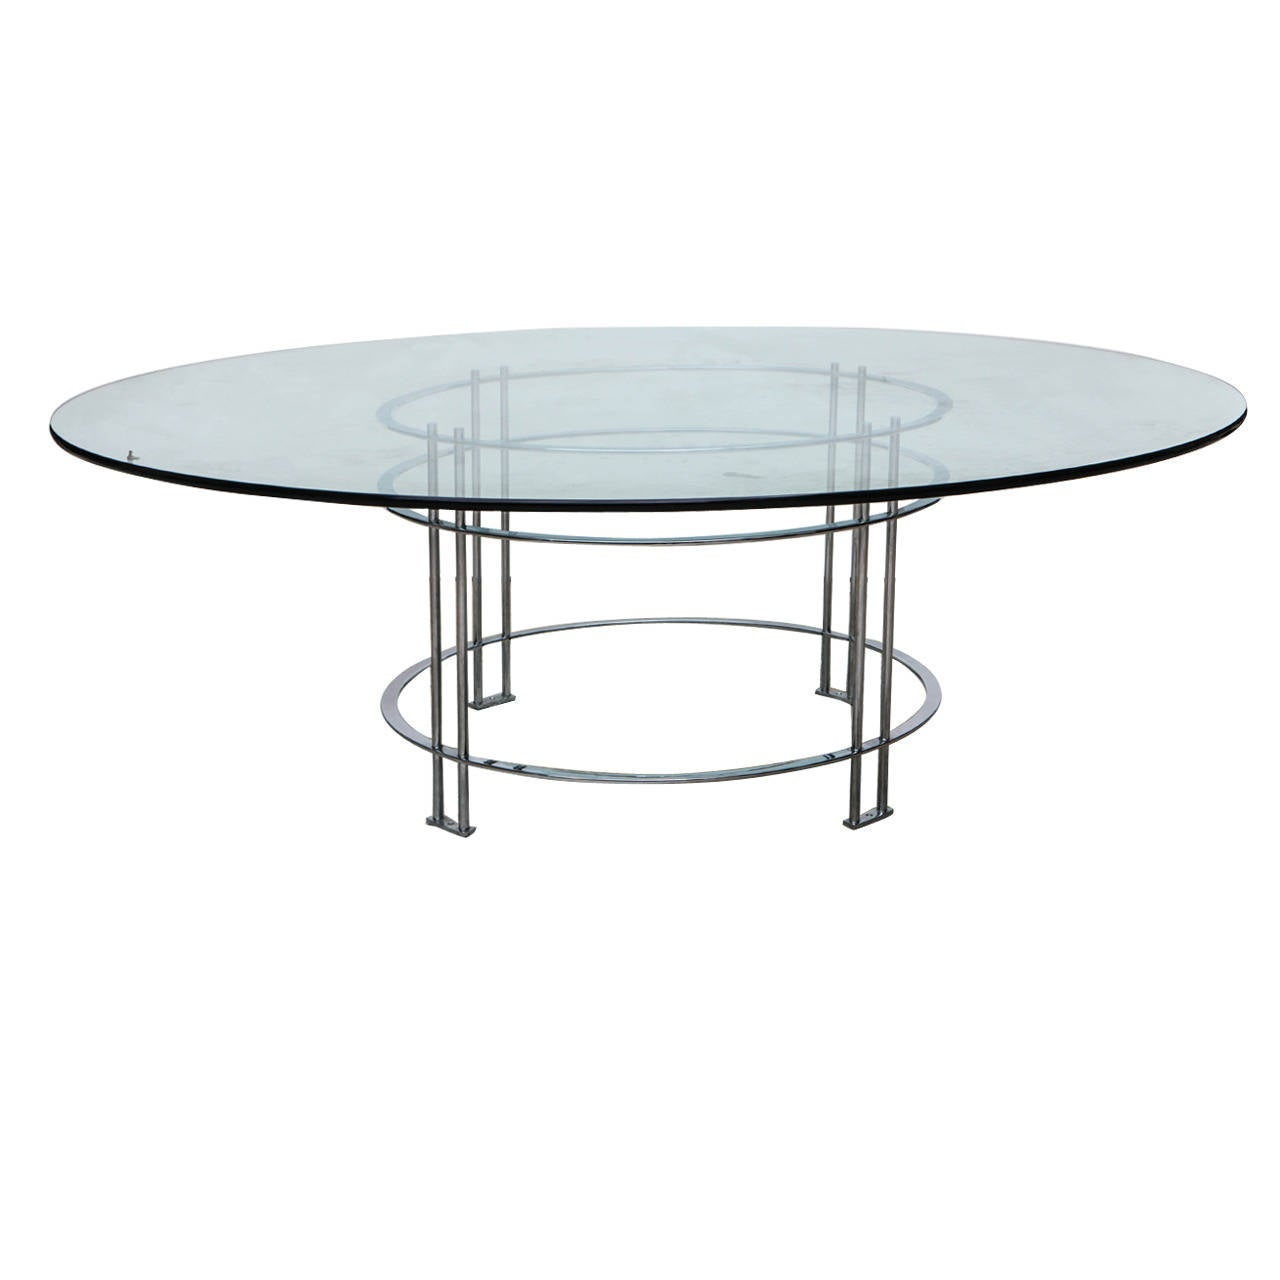 Vintage round dining table with glass top for sale at 1stdibs Round glass table top